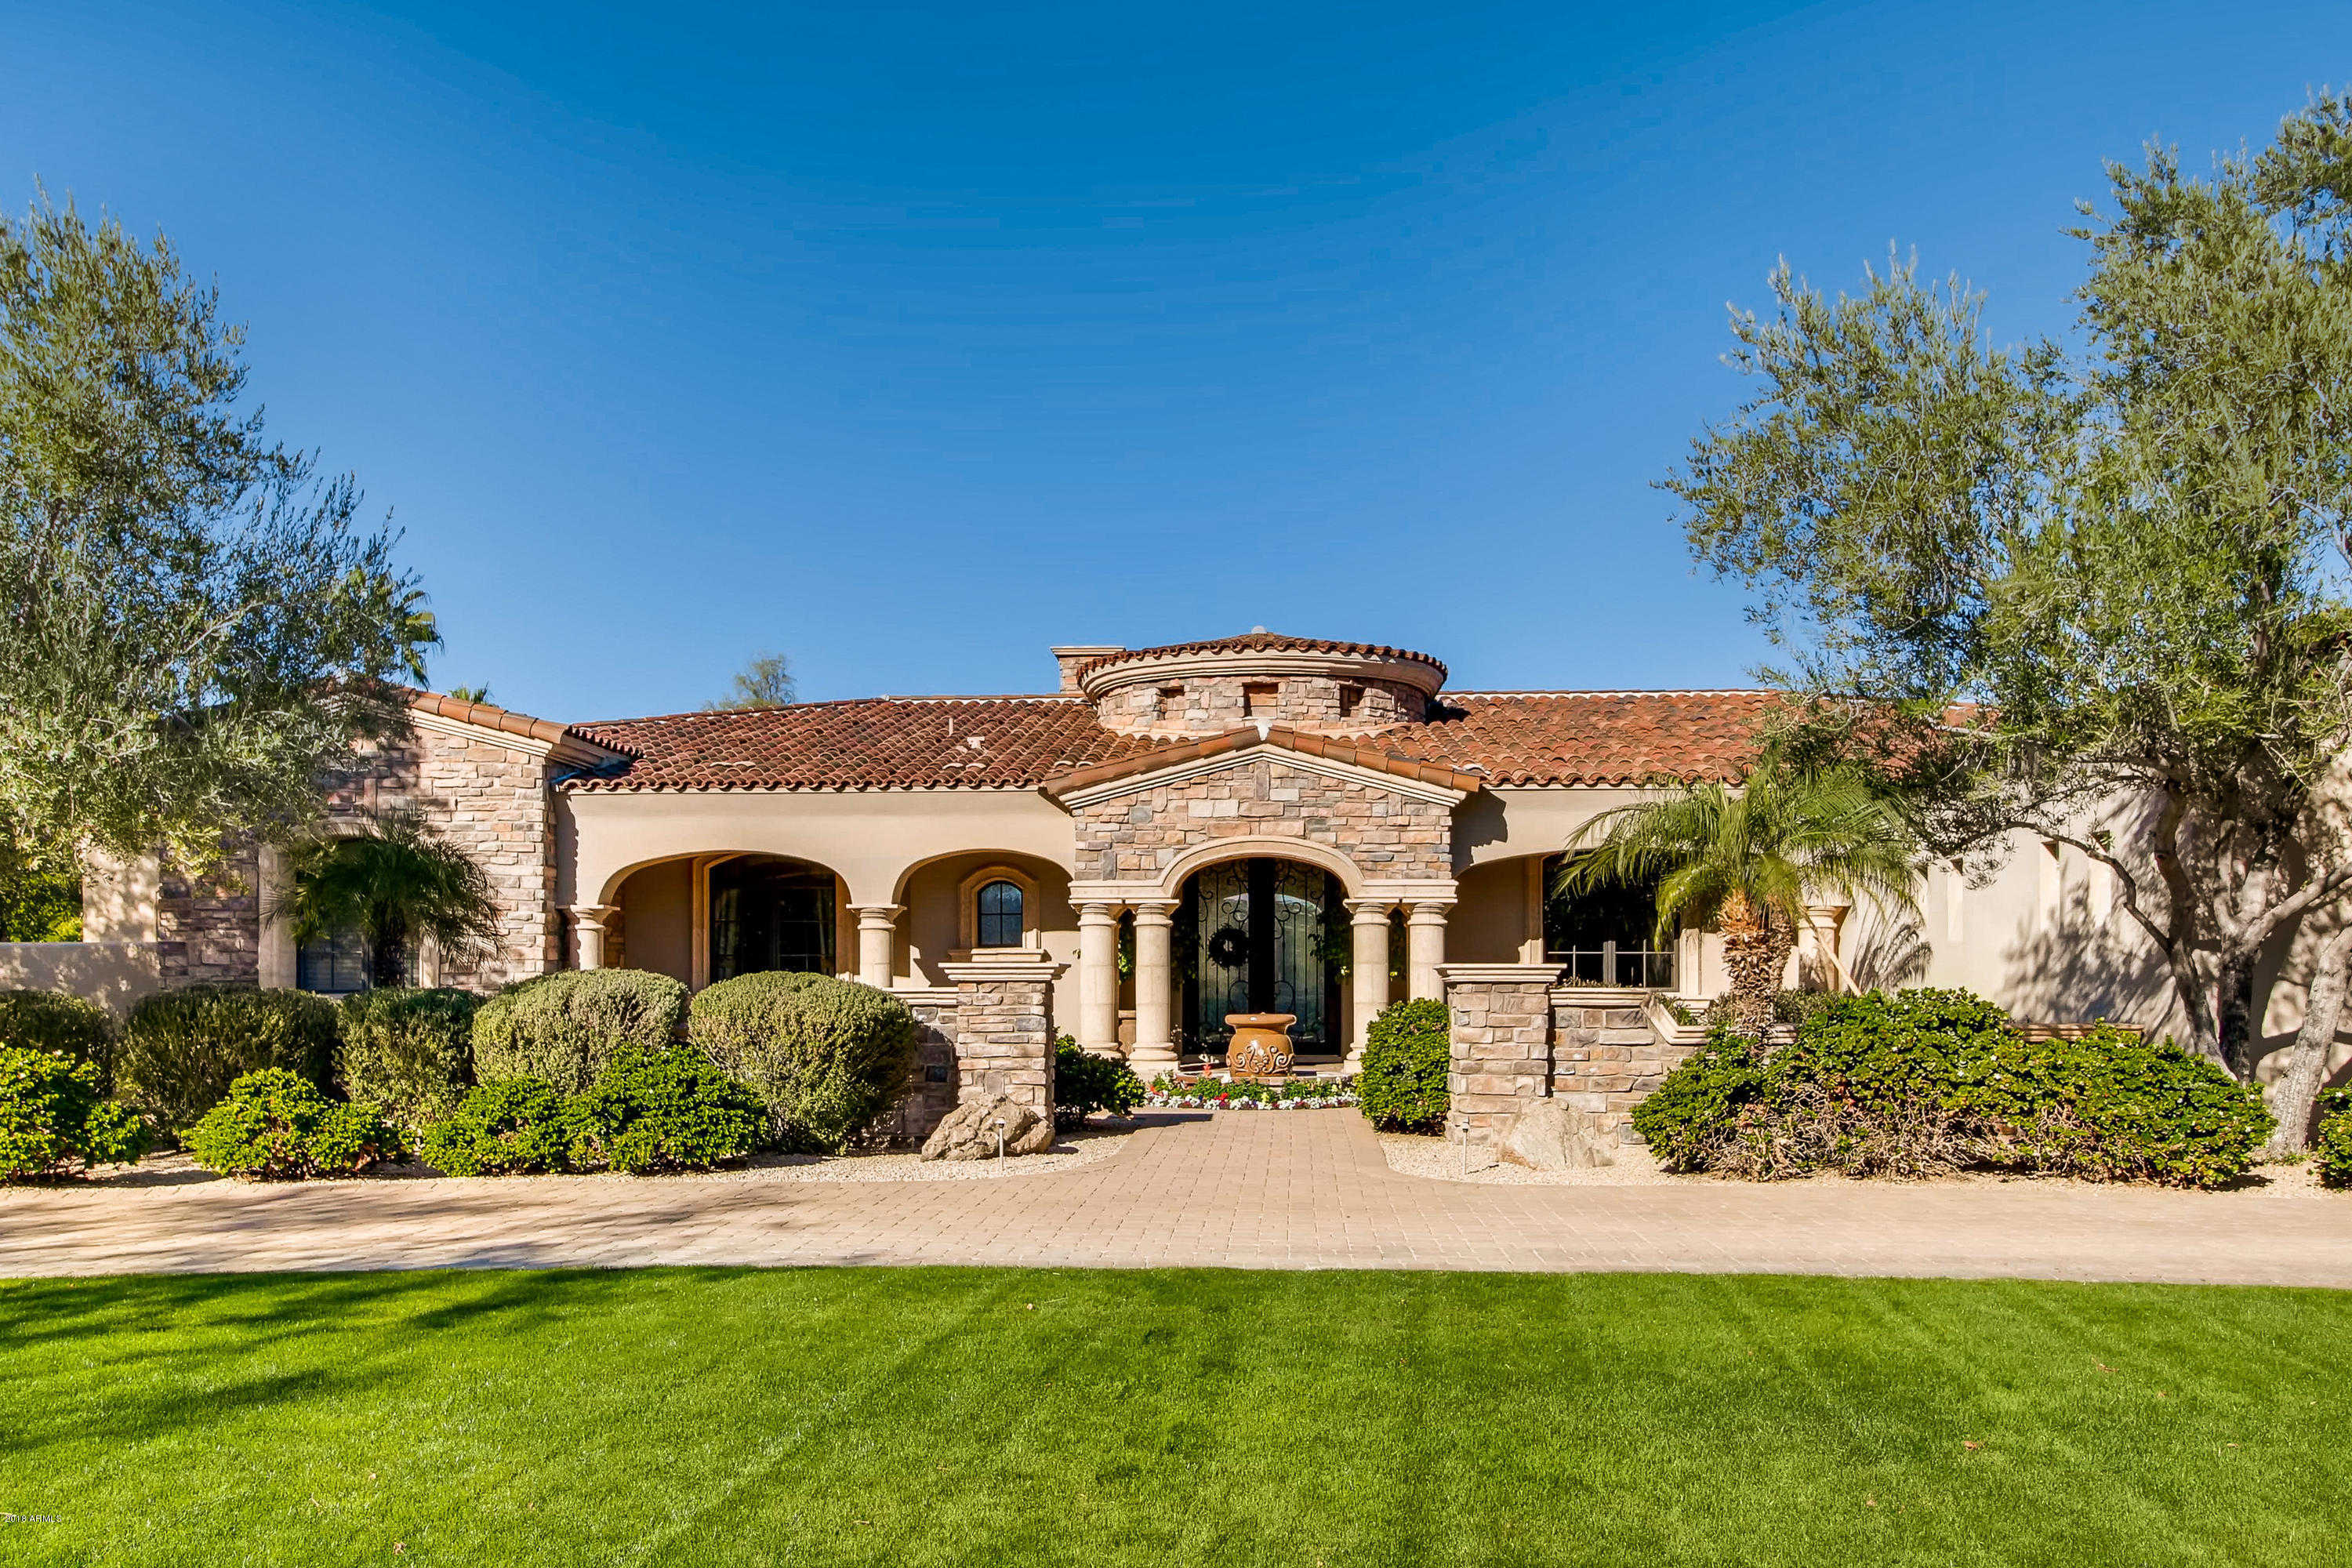 $3,250,000 - 4Br/5Ba - Home for Sale in Judson, Paradise Valley